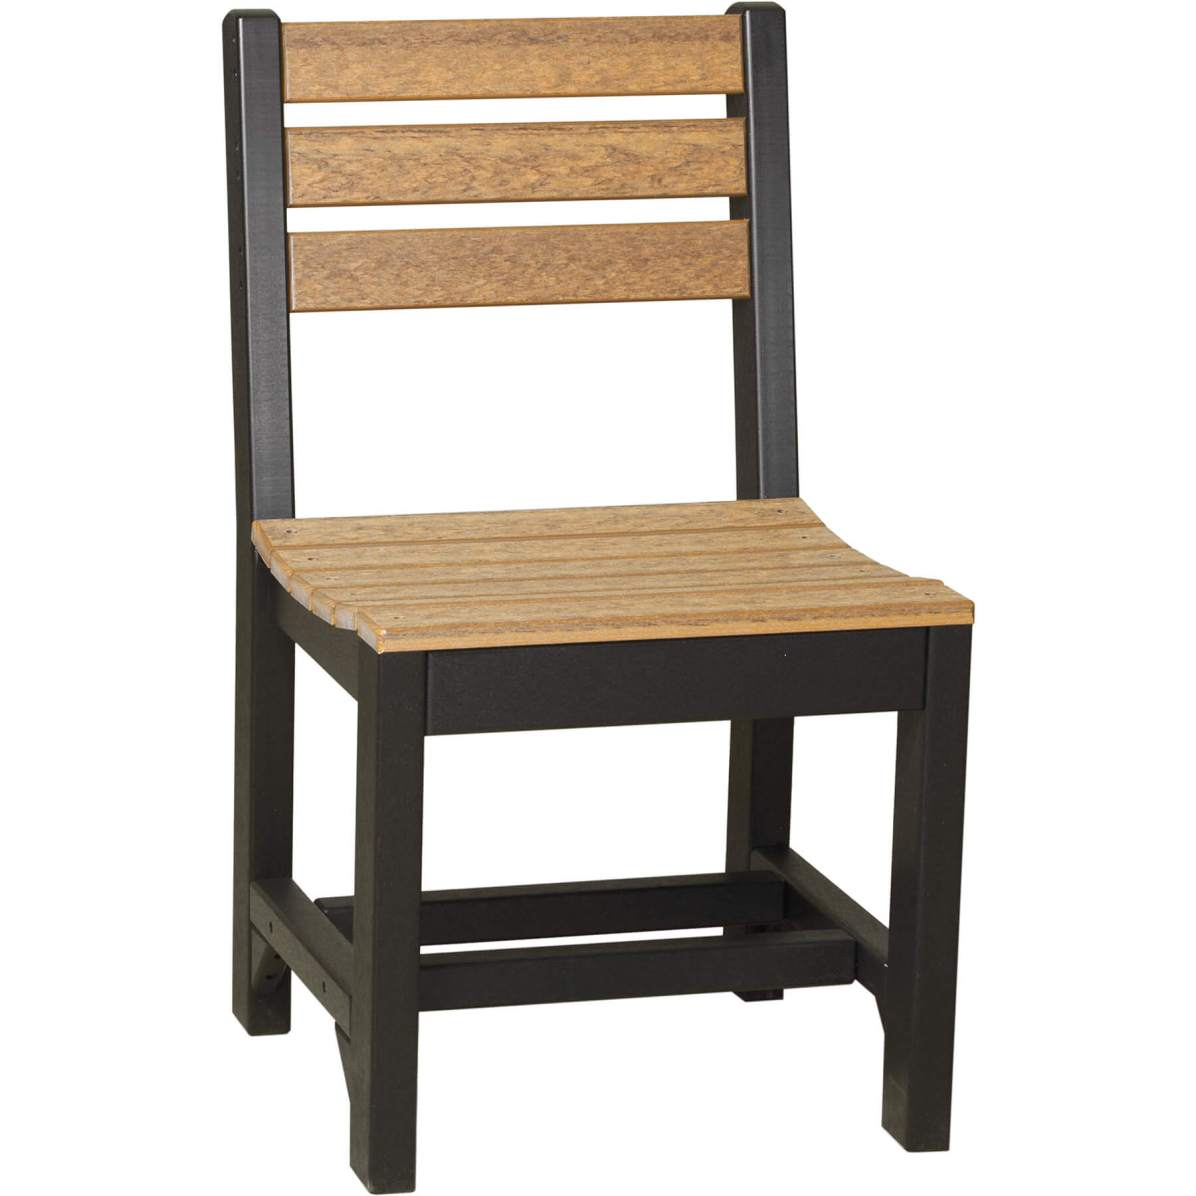 ISCDAMB Island Side Chair Dining Height (Antique Mahogany & Black)